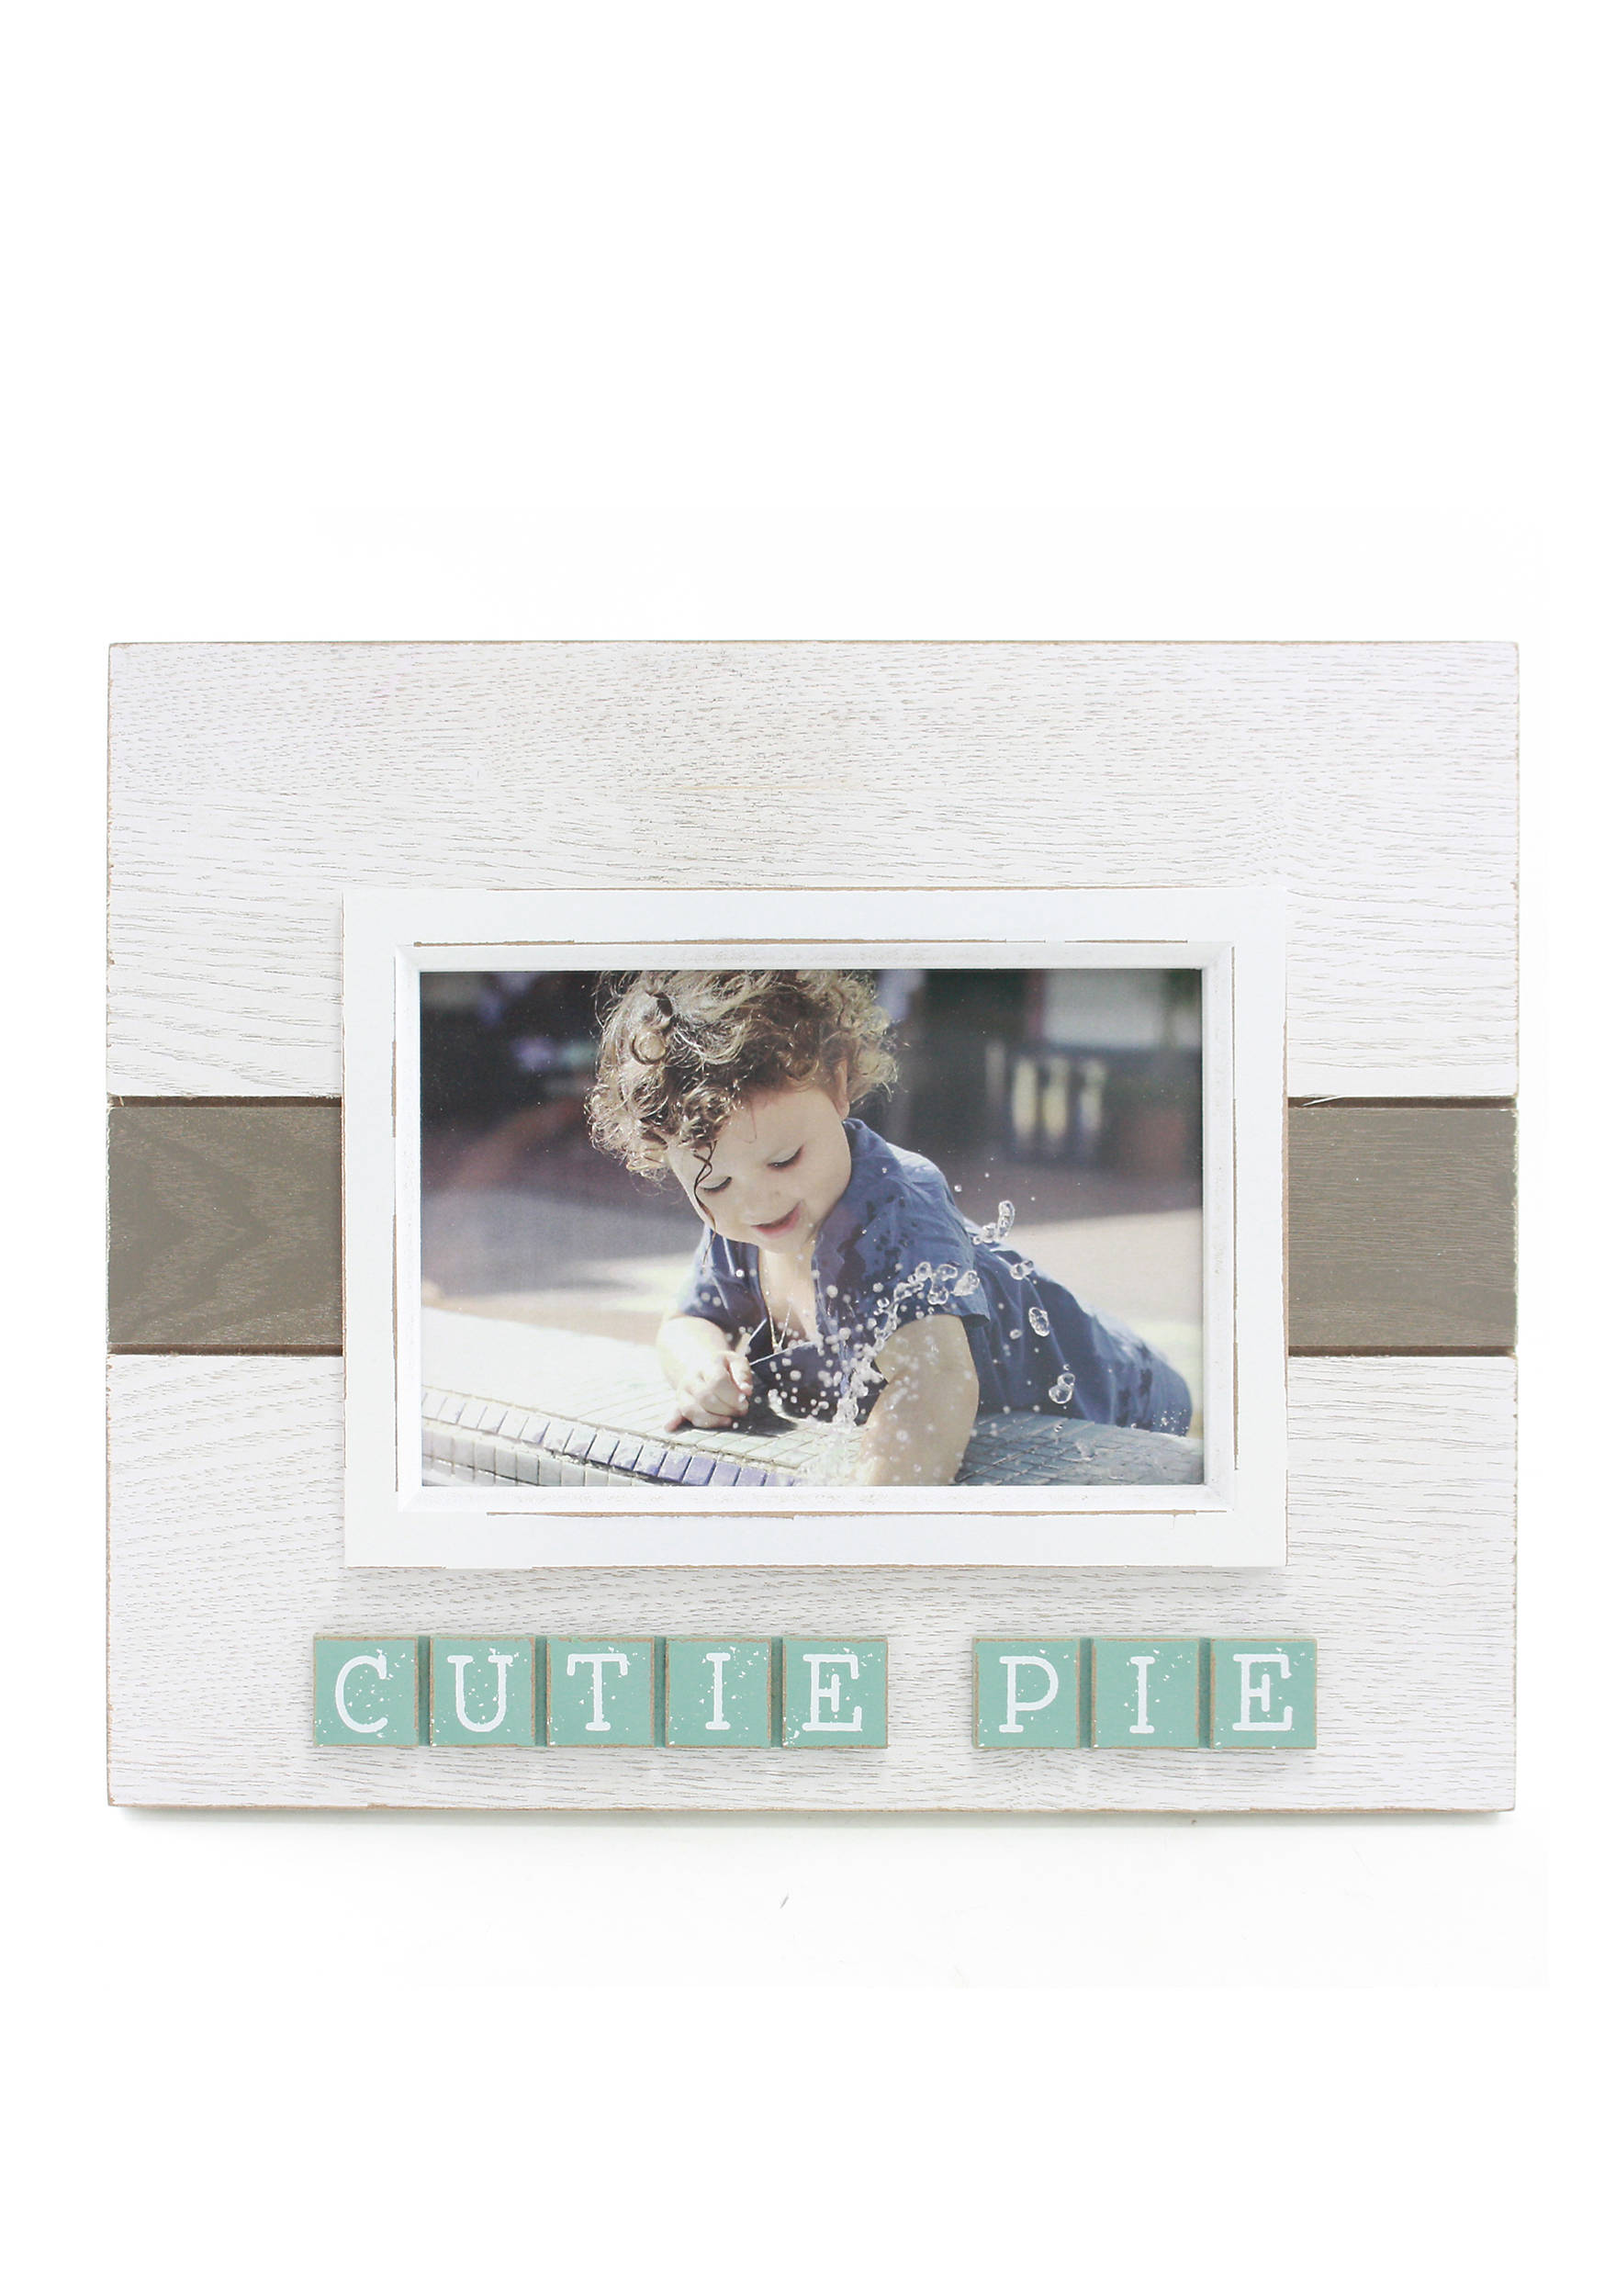 Fetco home dcor 4 x 6 lowrie frame cutie pie white and light images jeuxipadfo Gallery